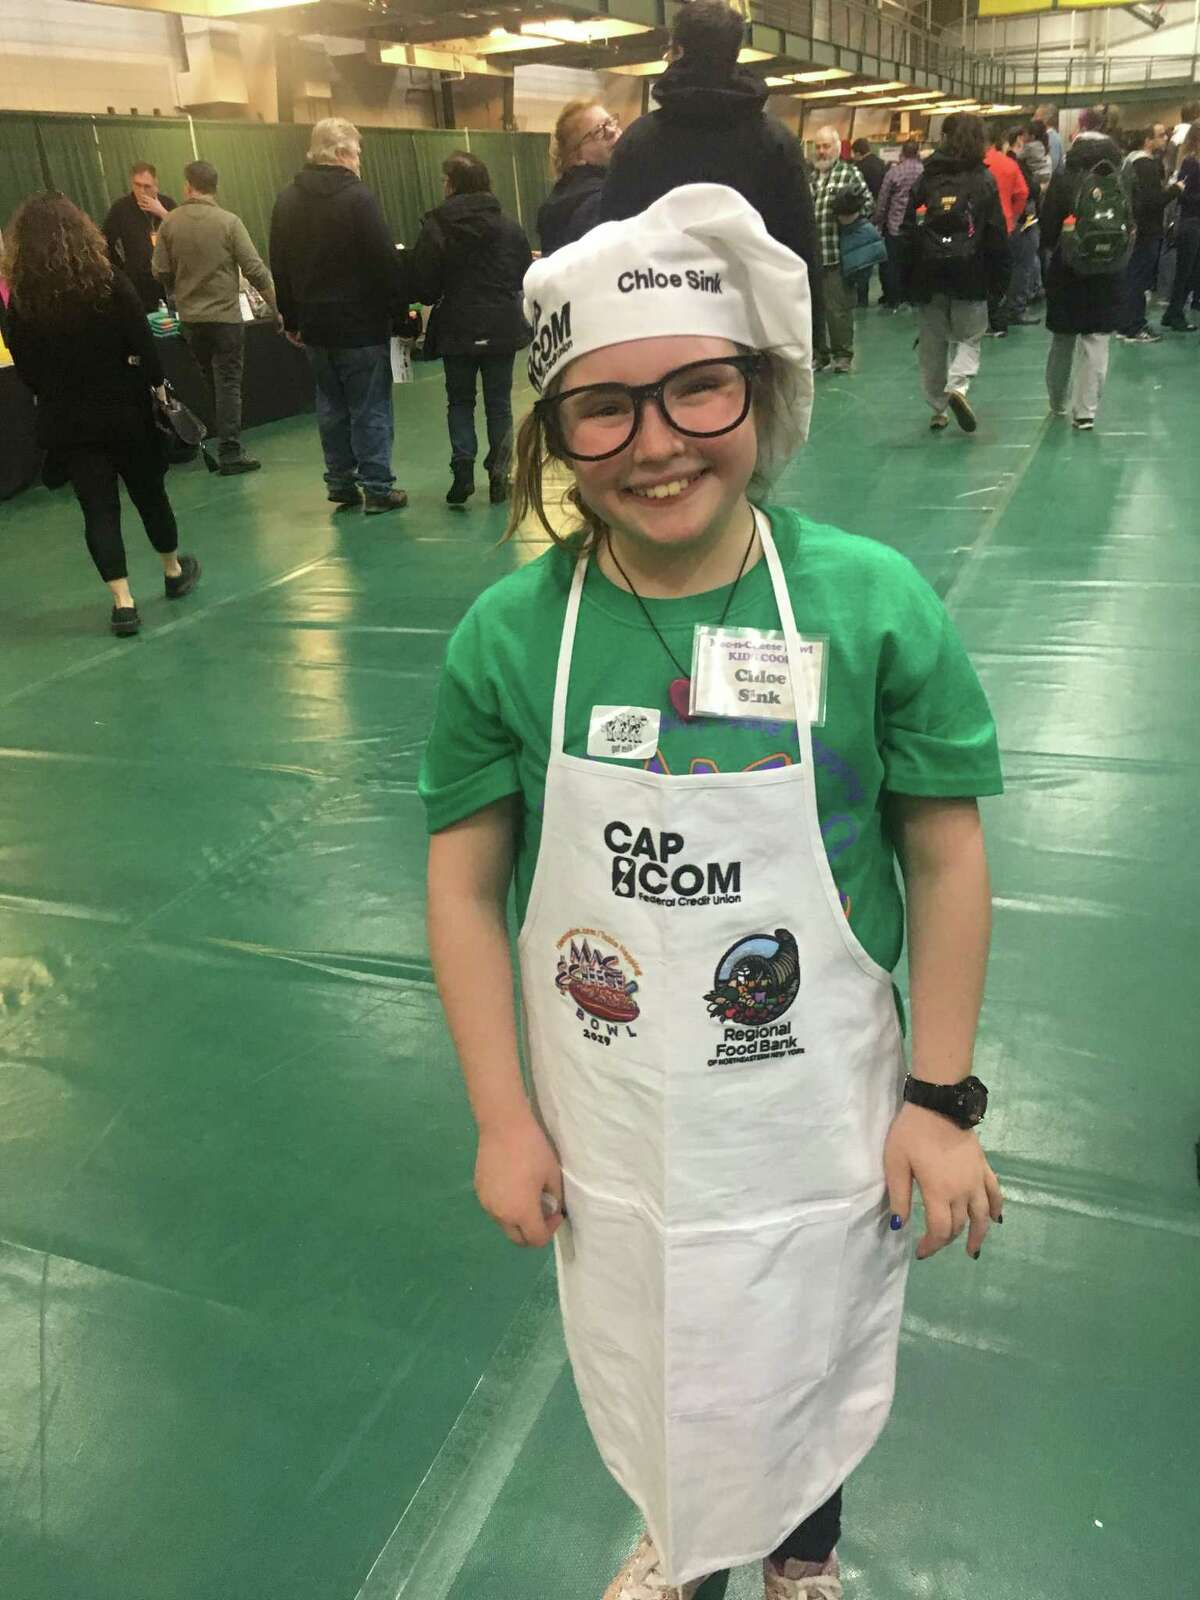 Chloe Sink, 10, of Albany is the kids cook winner from the 2019 Mac-N-Cheese Bowl. (Provided)